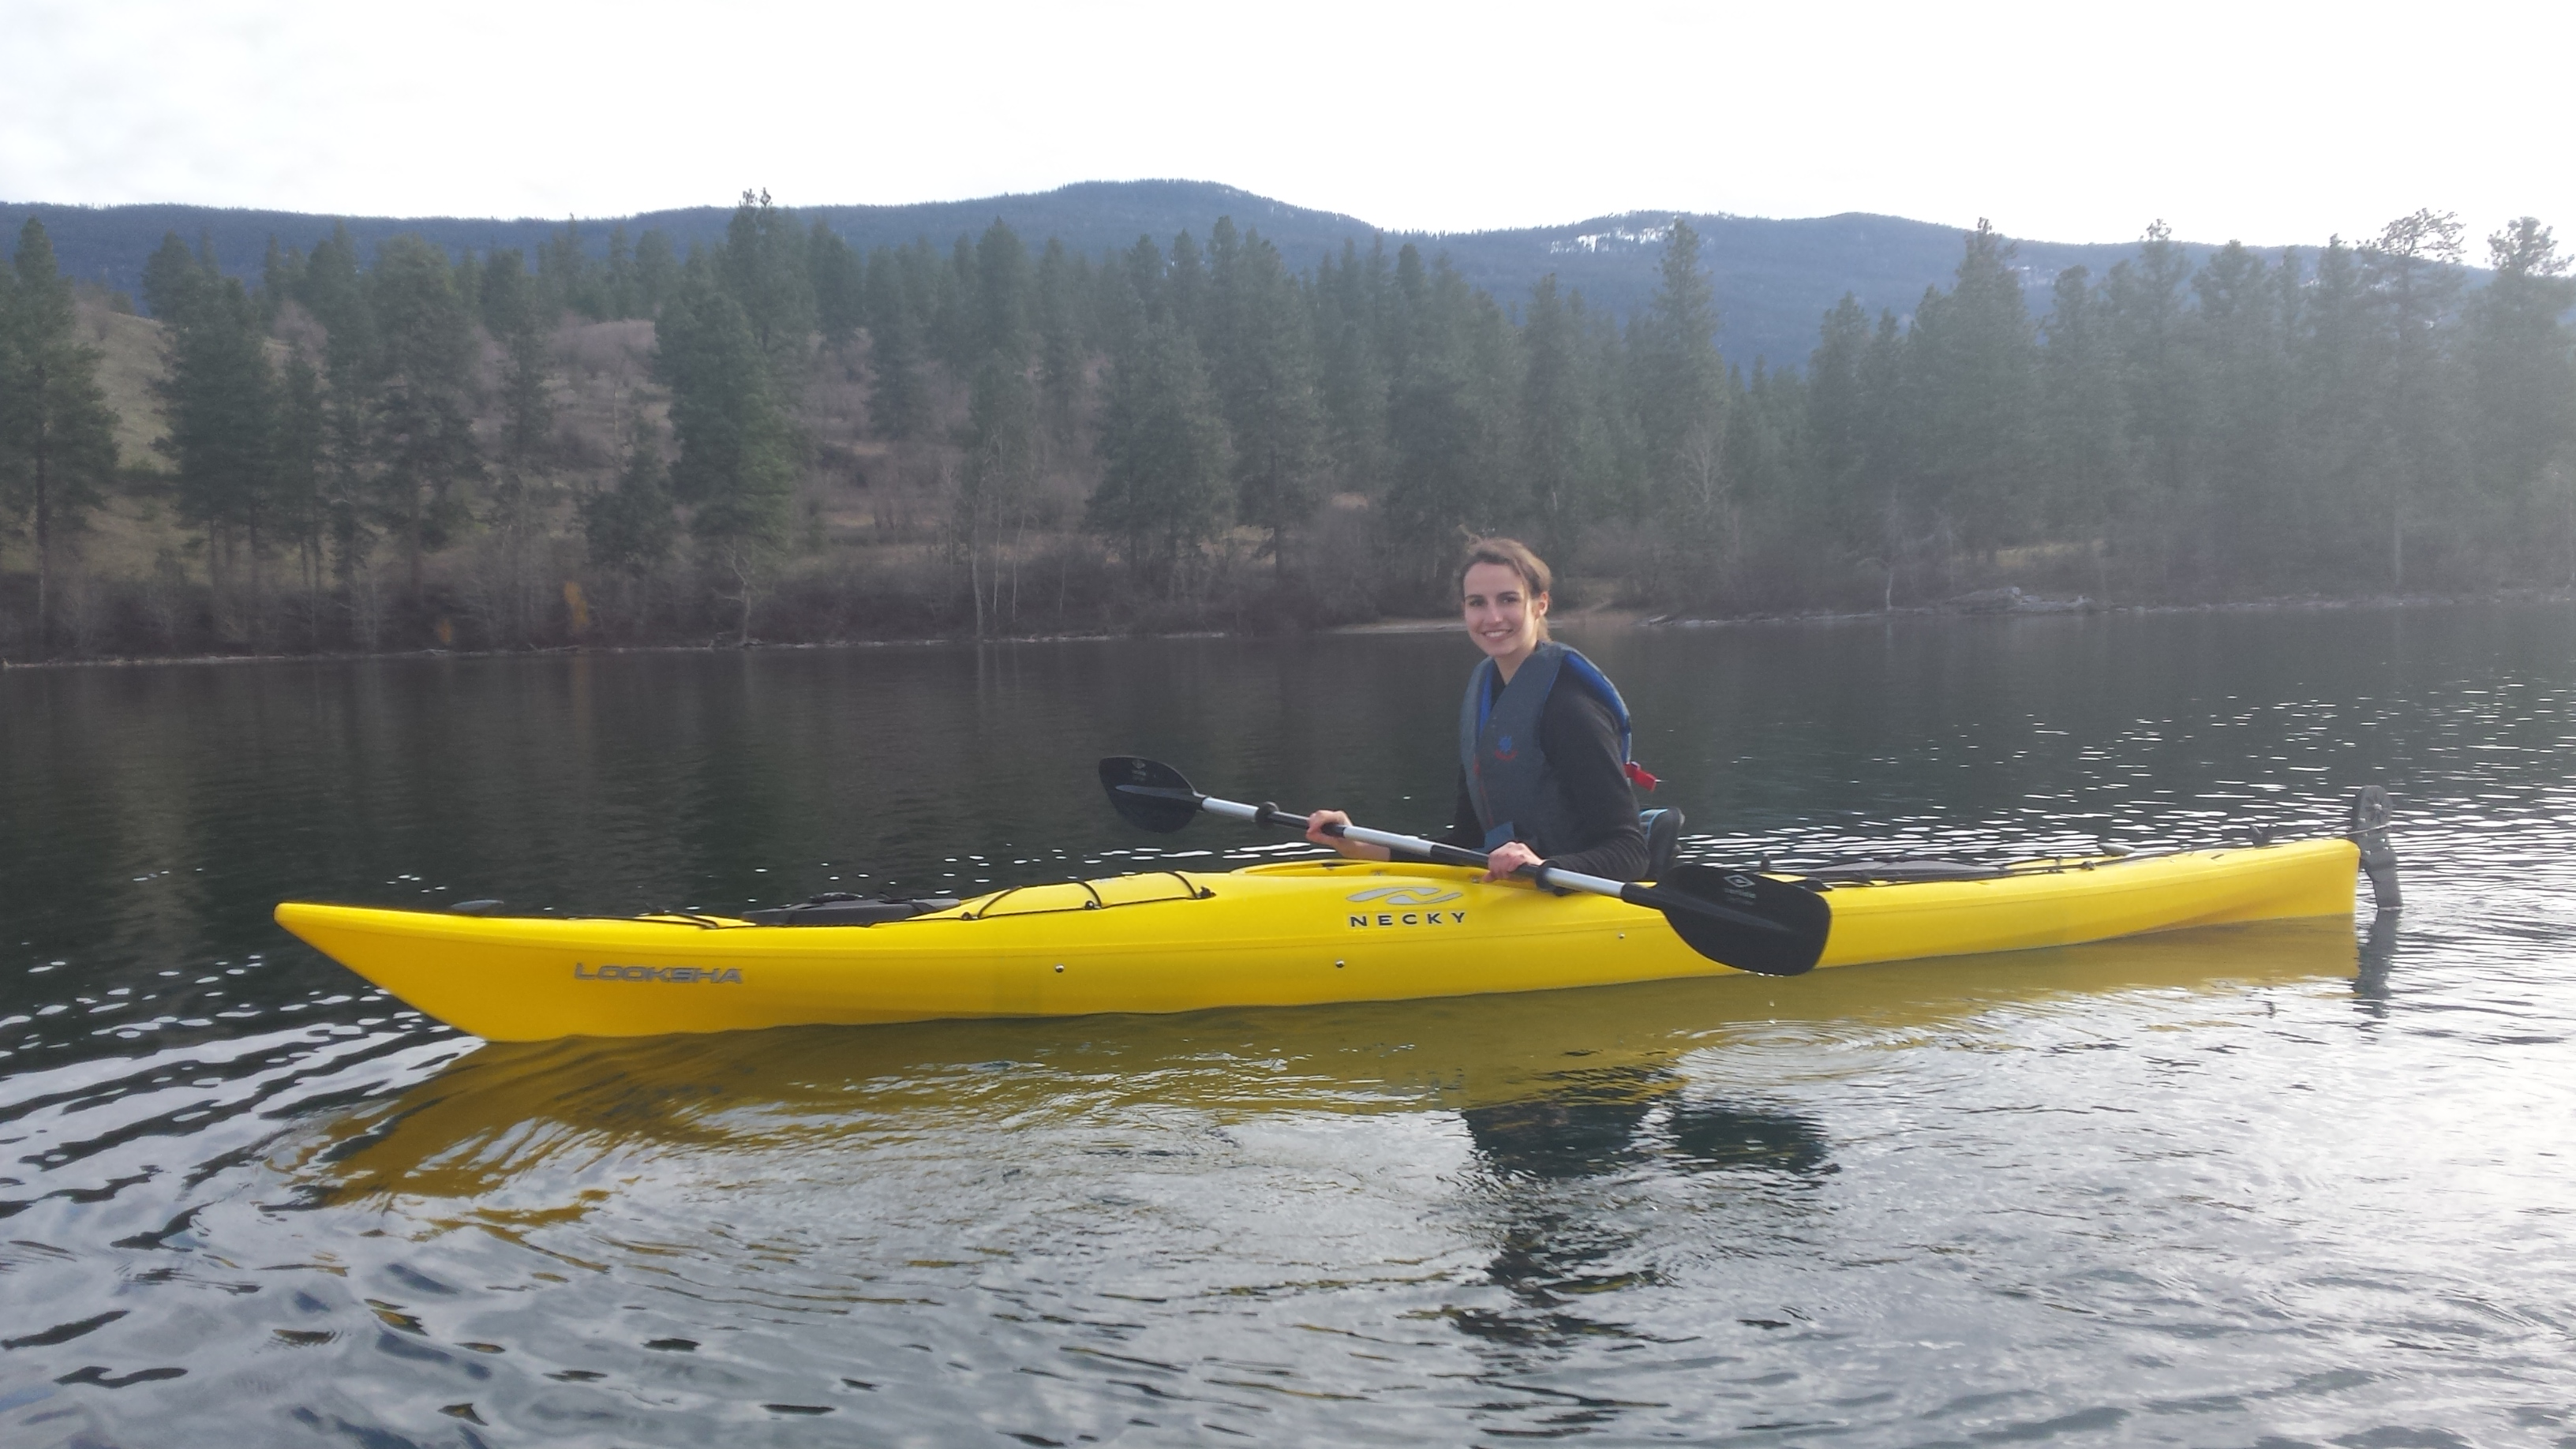 Alida out in her kayak, enjoying the outdoors.